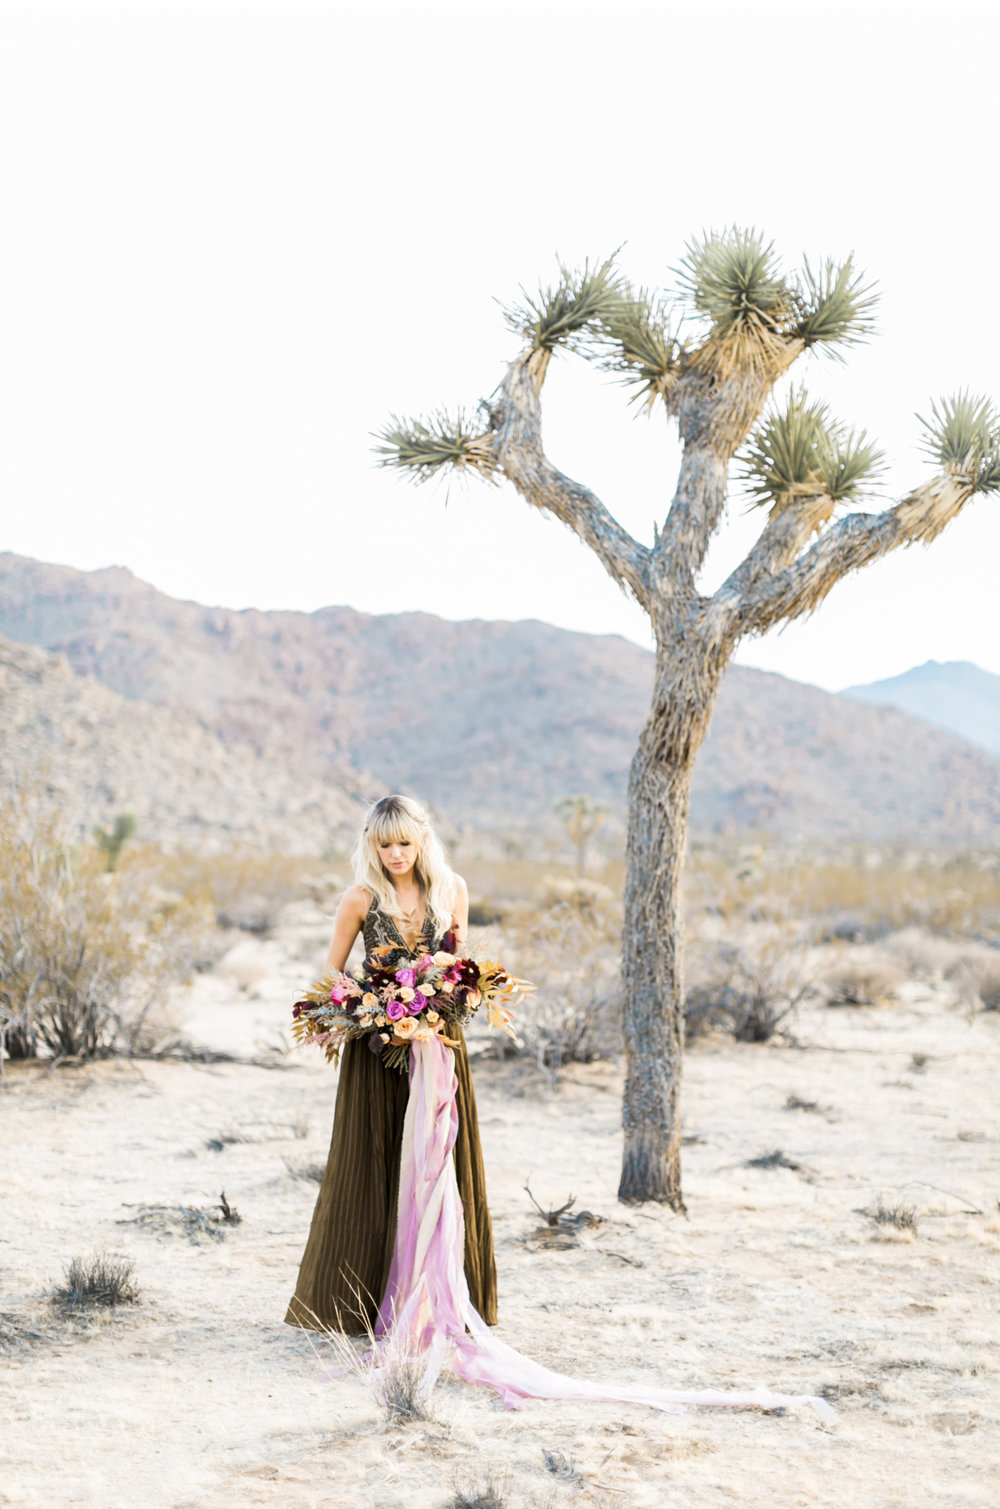 Joshua-Tree-Wedding-Natalie-Schutt-Photography-100-Layer-Cake_14.jpg